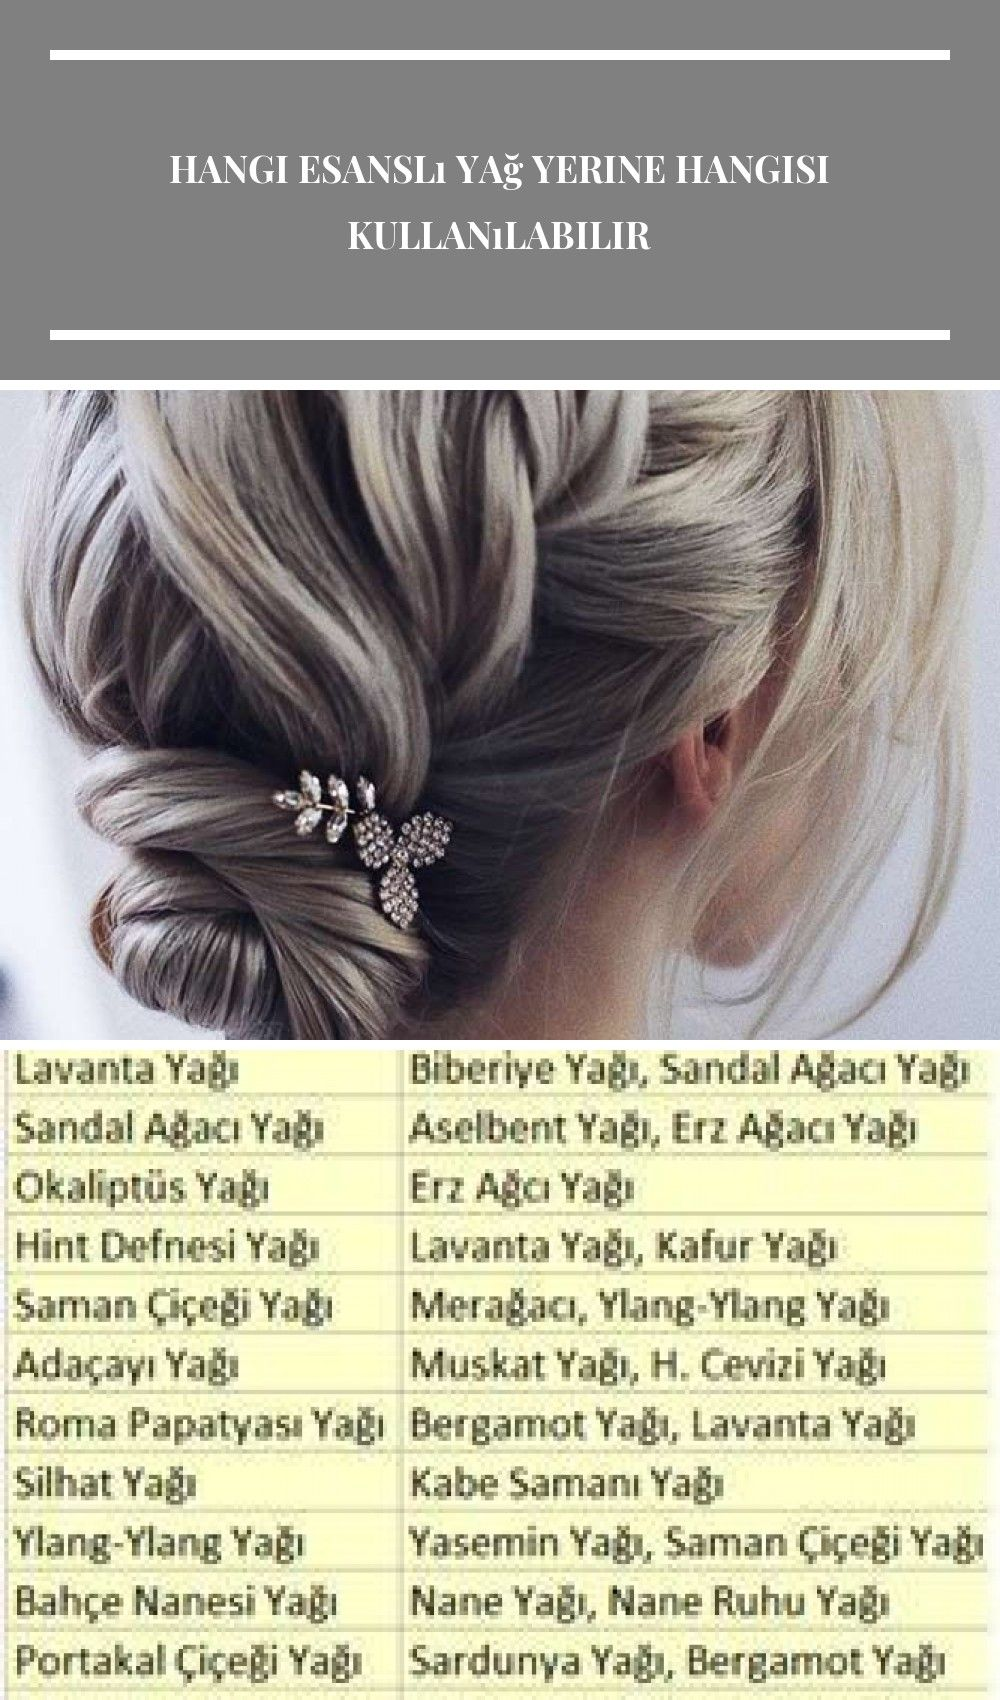 Cute Braided Short Hair Styles Braids Shorthair Buns Updo Are You Loo Braided Braids Buns Cute Hair Braids For Short Hair Hair Styles Braids